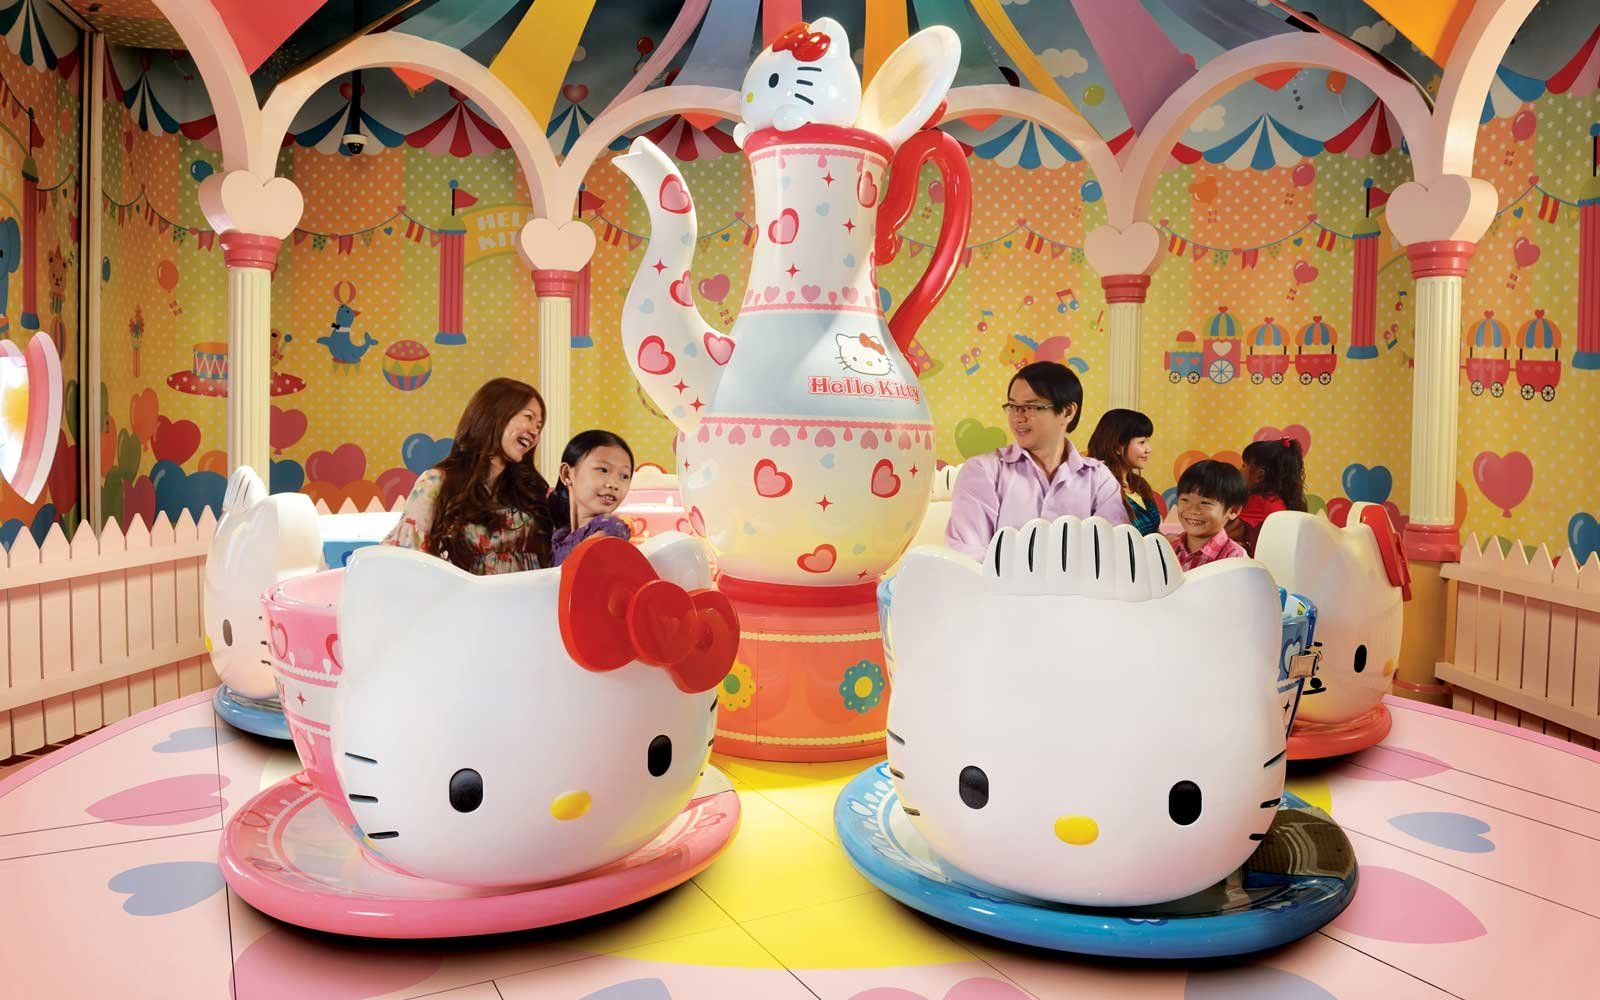 11 places that every hello kitty fan needs to visit